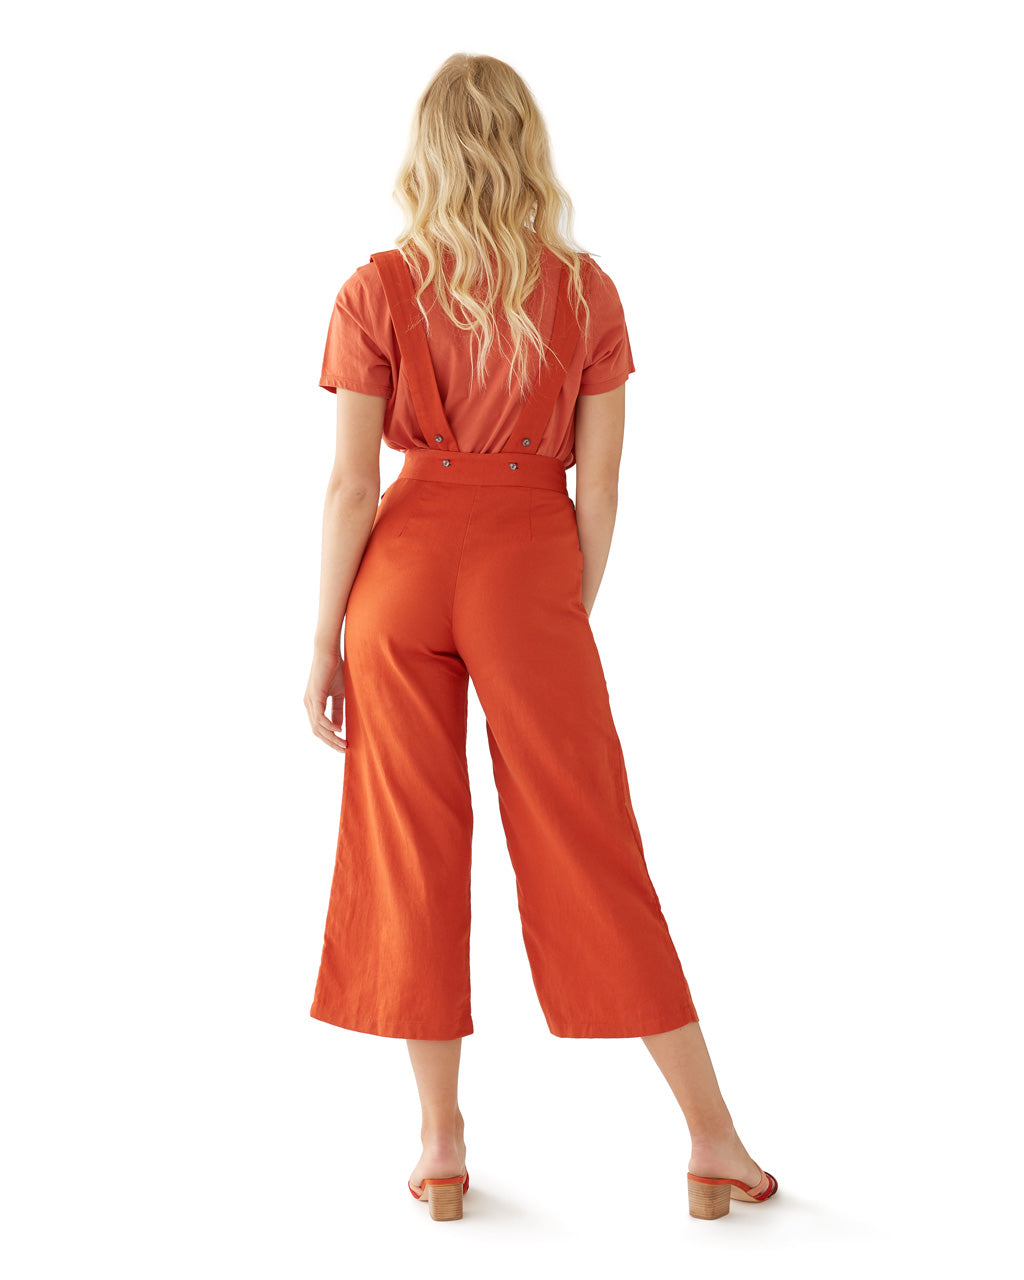 back view of woman wearing rust colored wide leg overalls